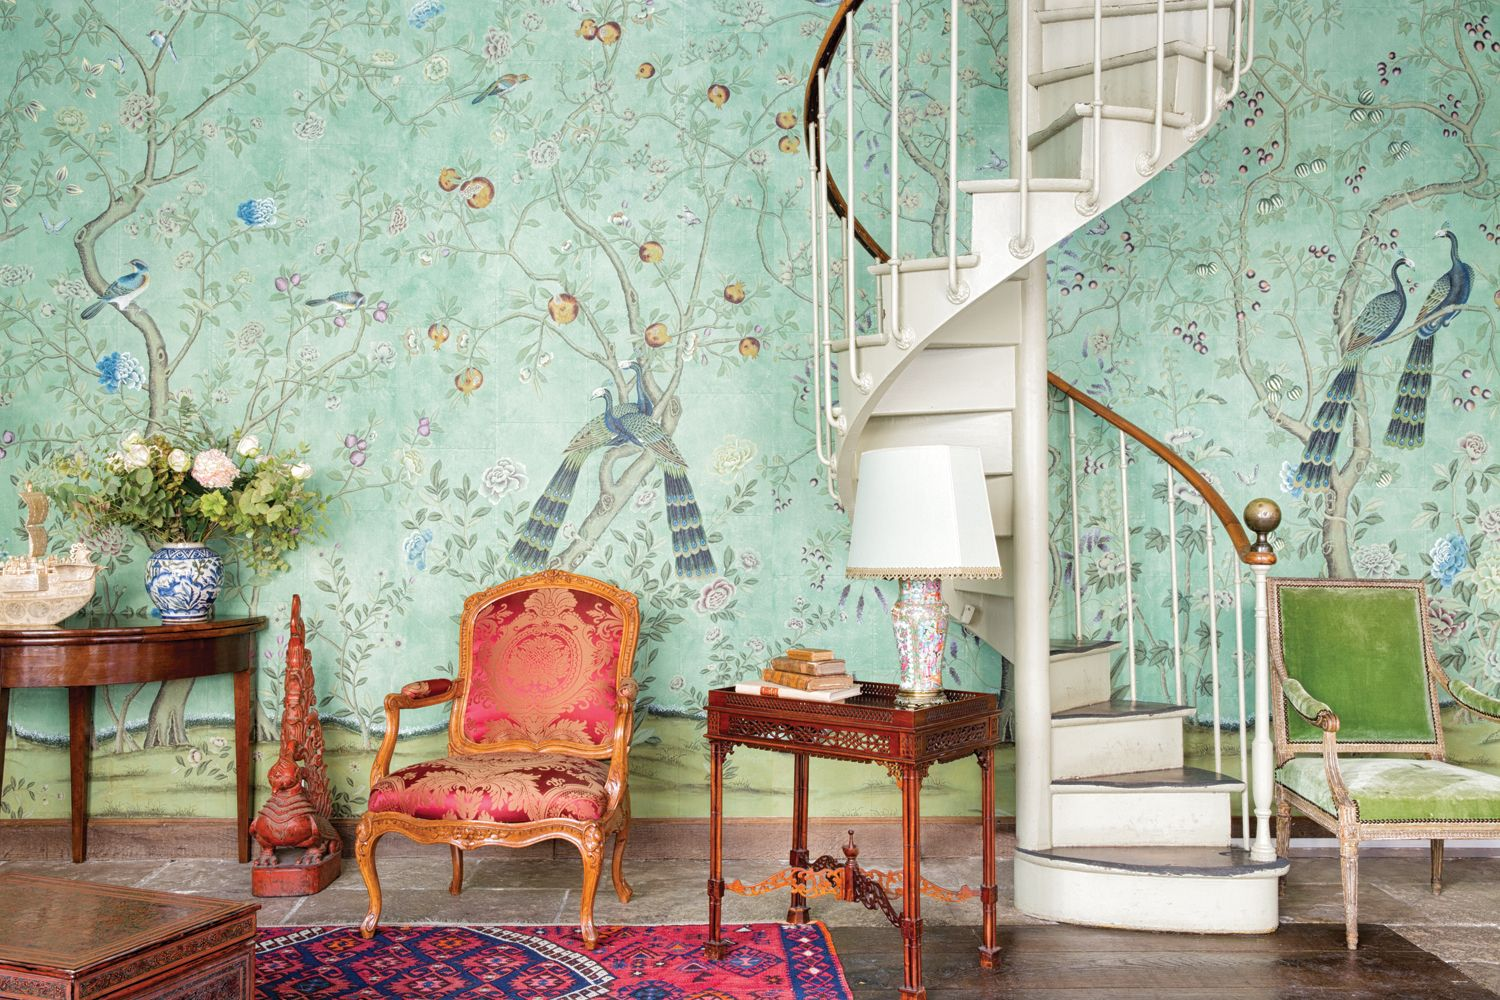 7 Ways To Decorate With Greenery, Pantone's Colour Of The Year